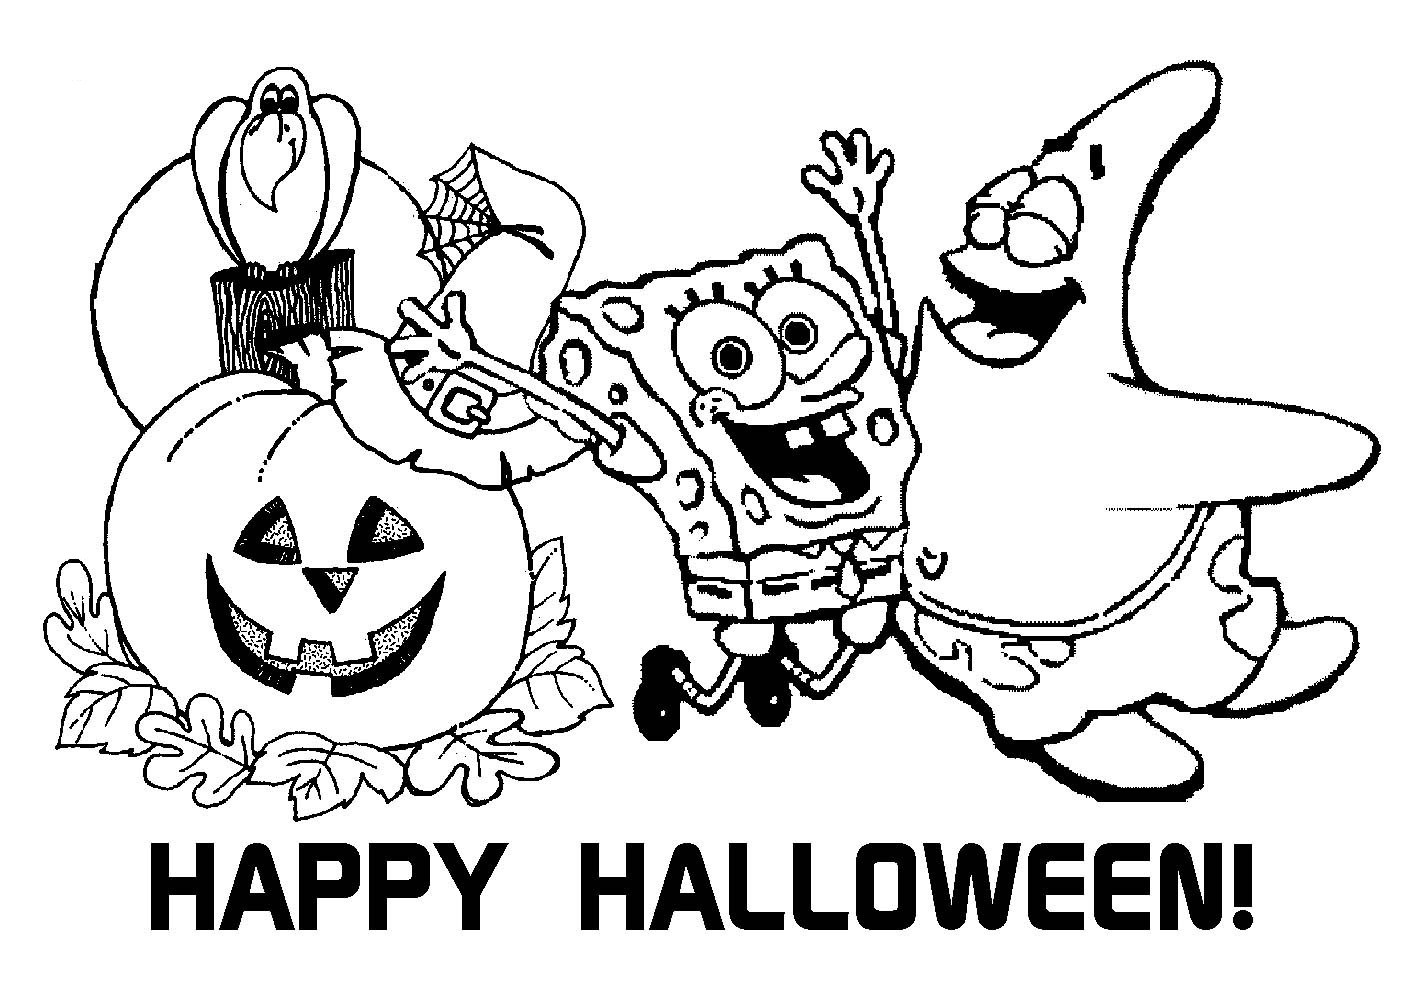 Halloween Coloring Sheets For Kids  Halloween Coloring Pages Free To Download